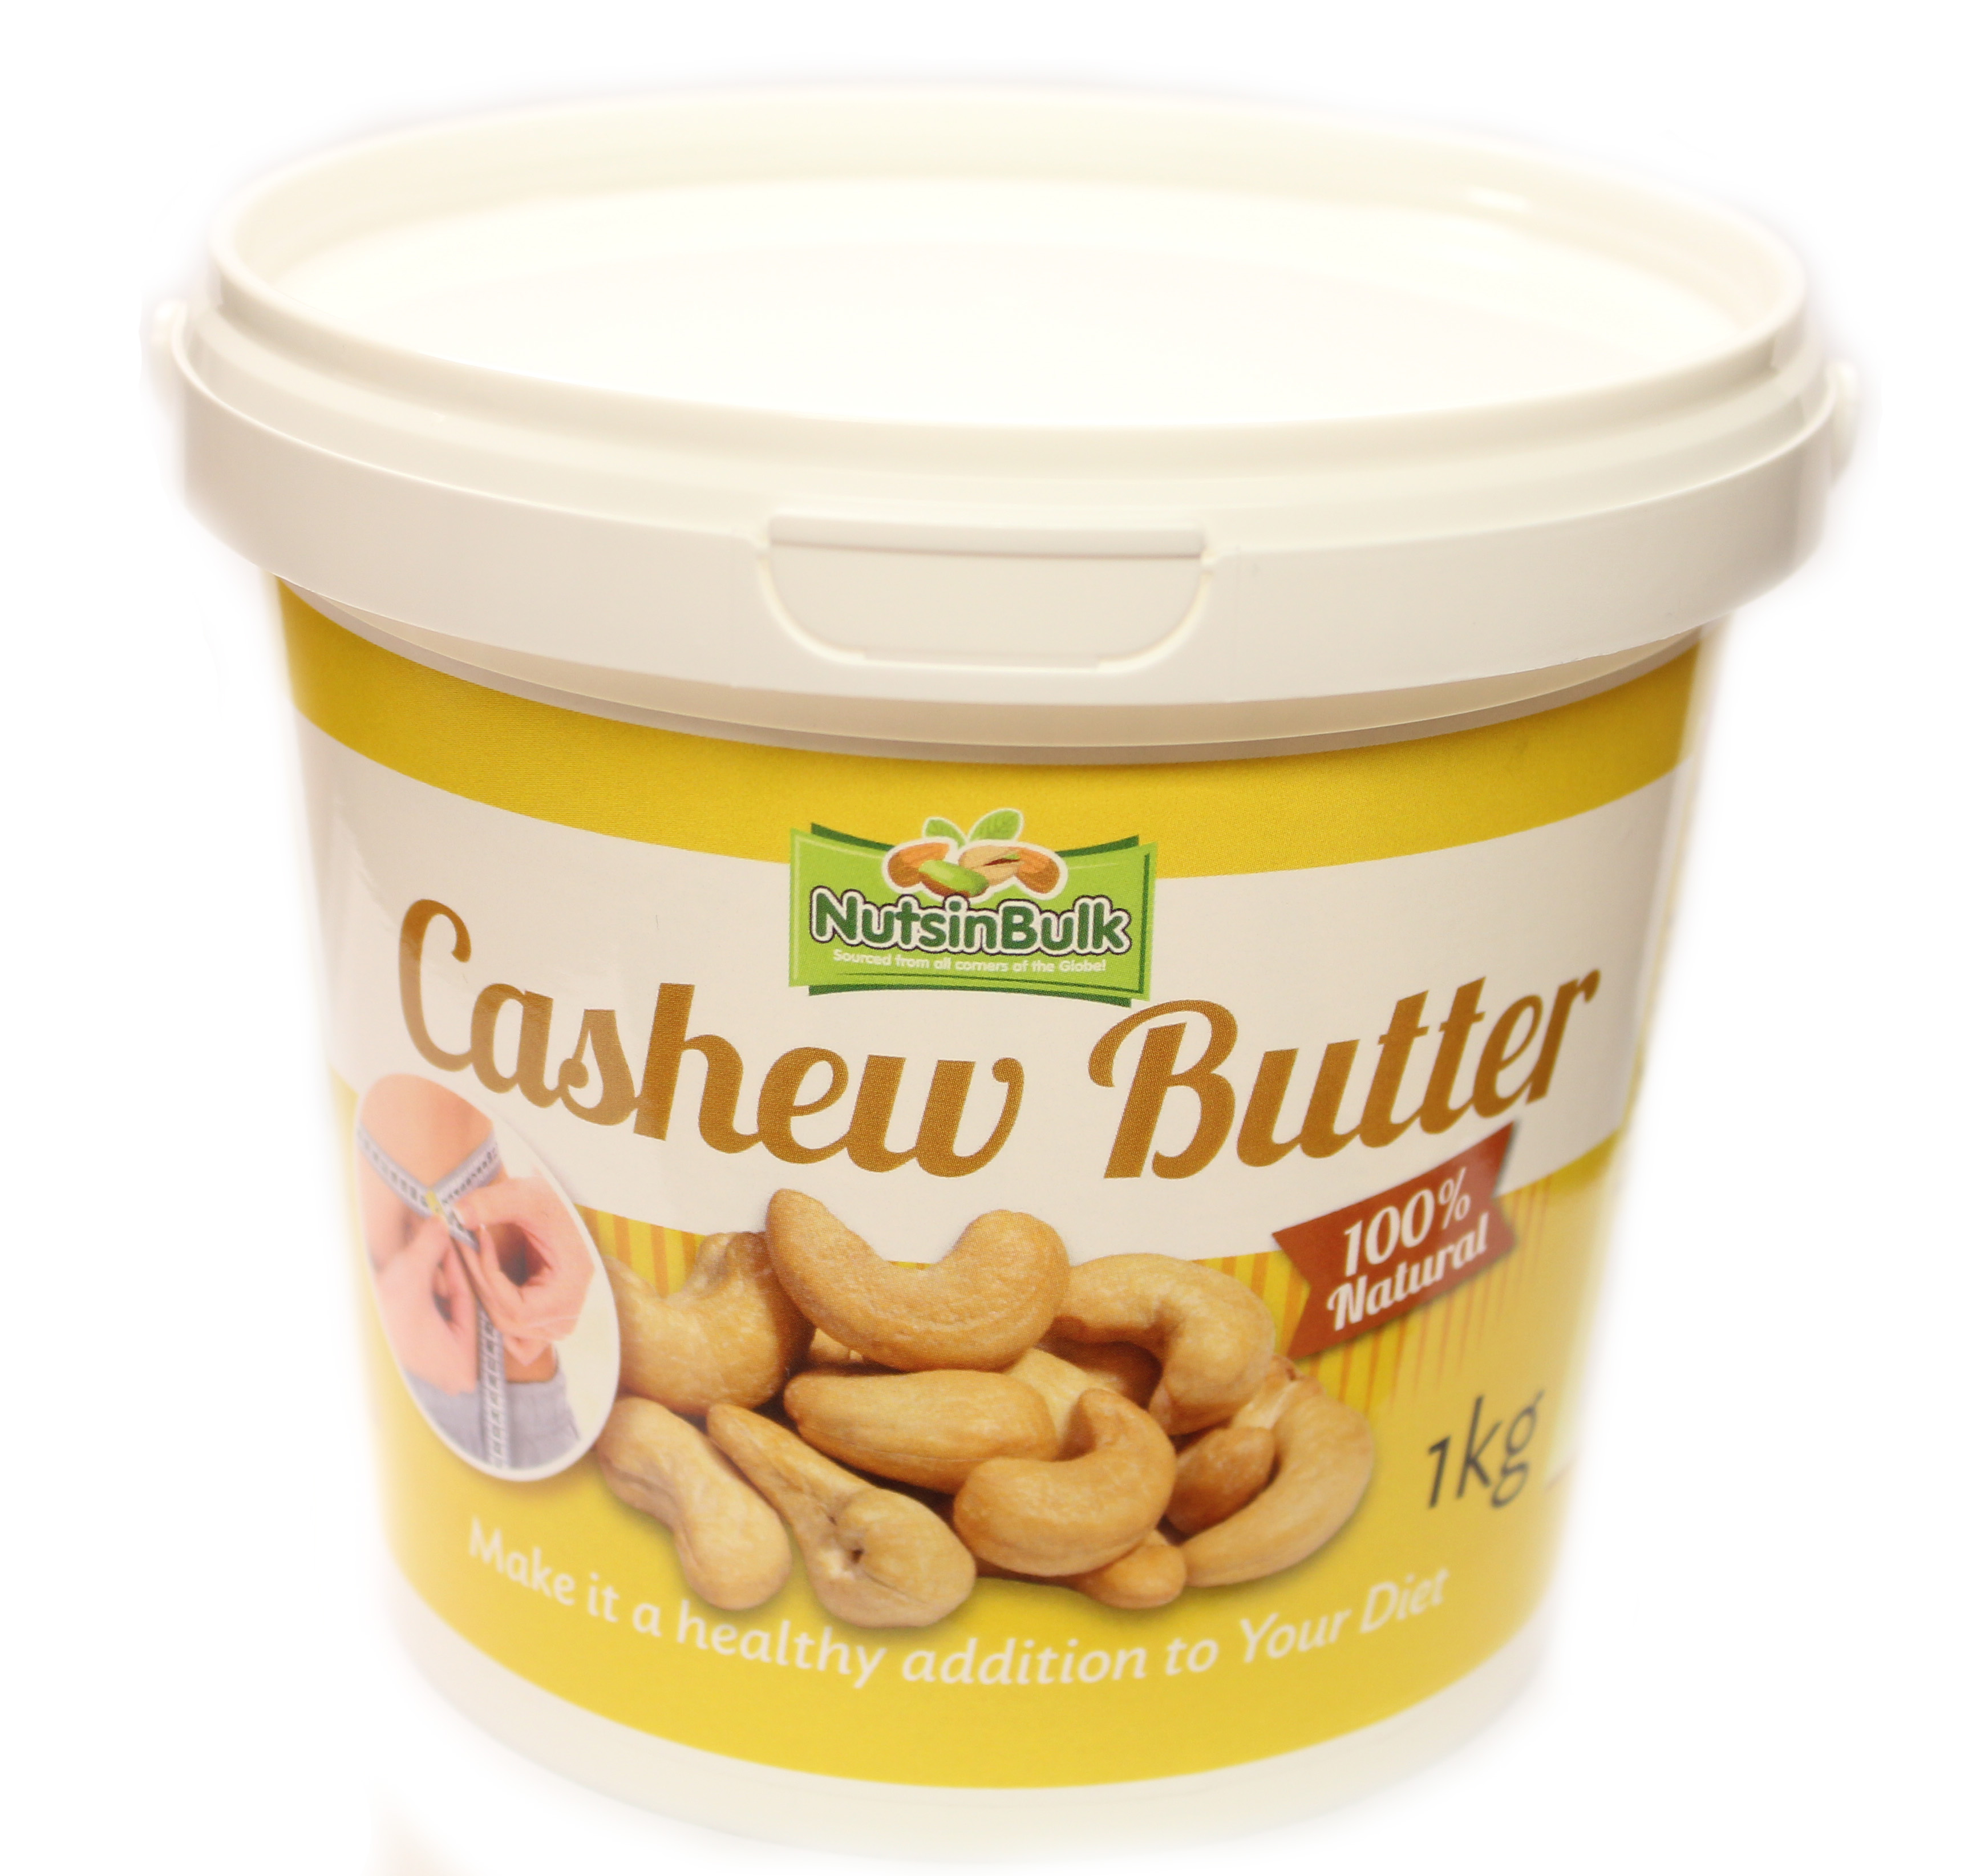 Nuts in Bulk - Cashew Butter (100% Nuts) Nuts in Bulk